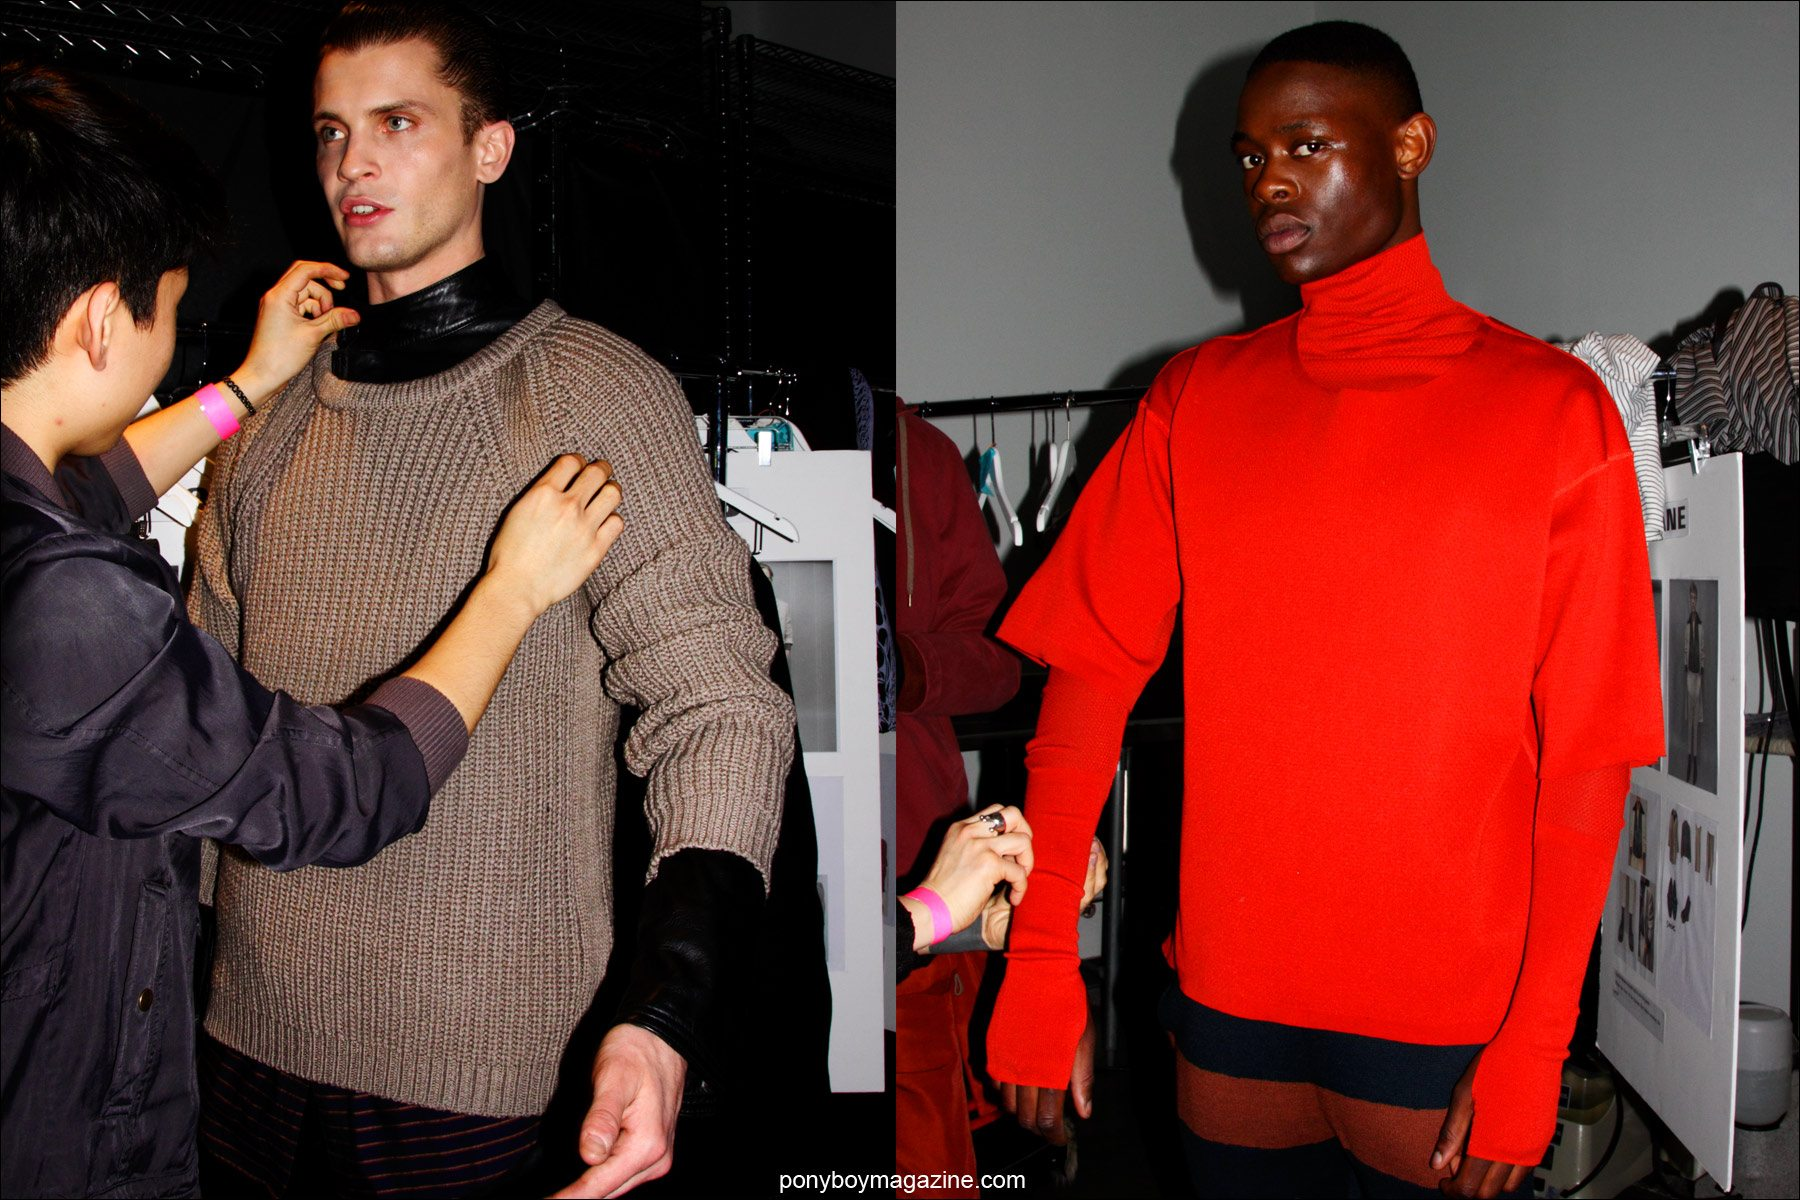 Male models get dressed backstage at Robert Geller F/W15 collection at Pier 59 Studios. Photos by Alexander Thompson for Ponyboy magazine.